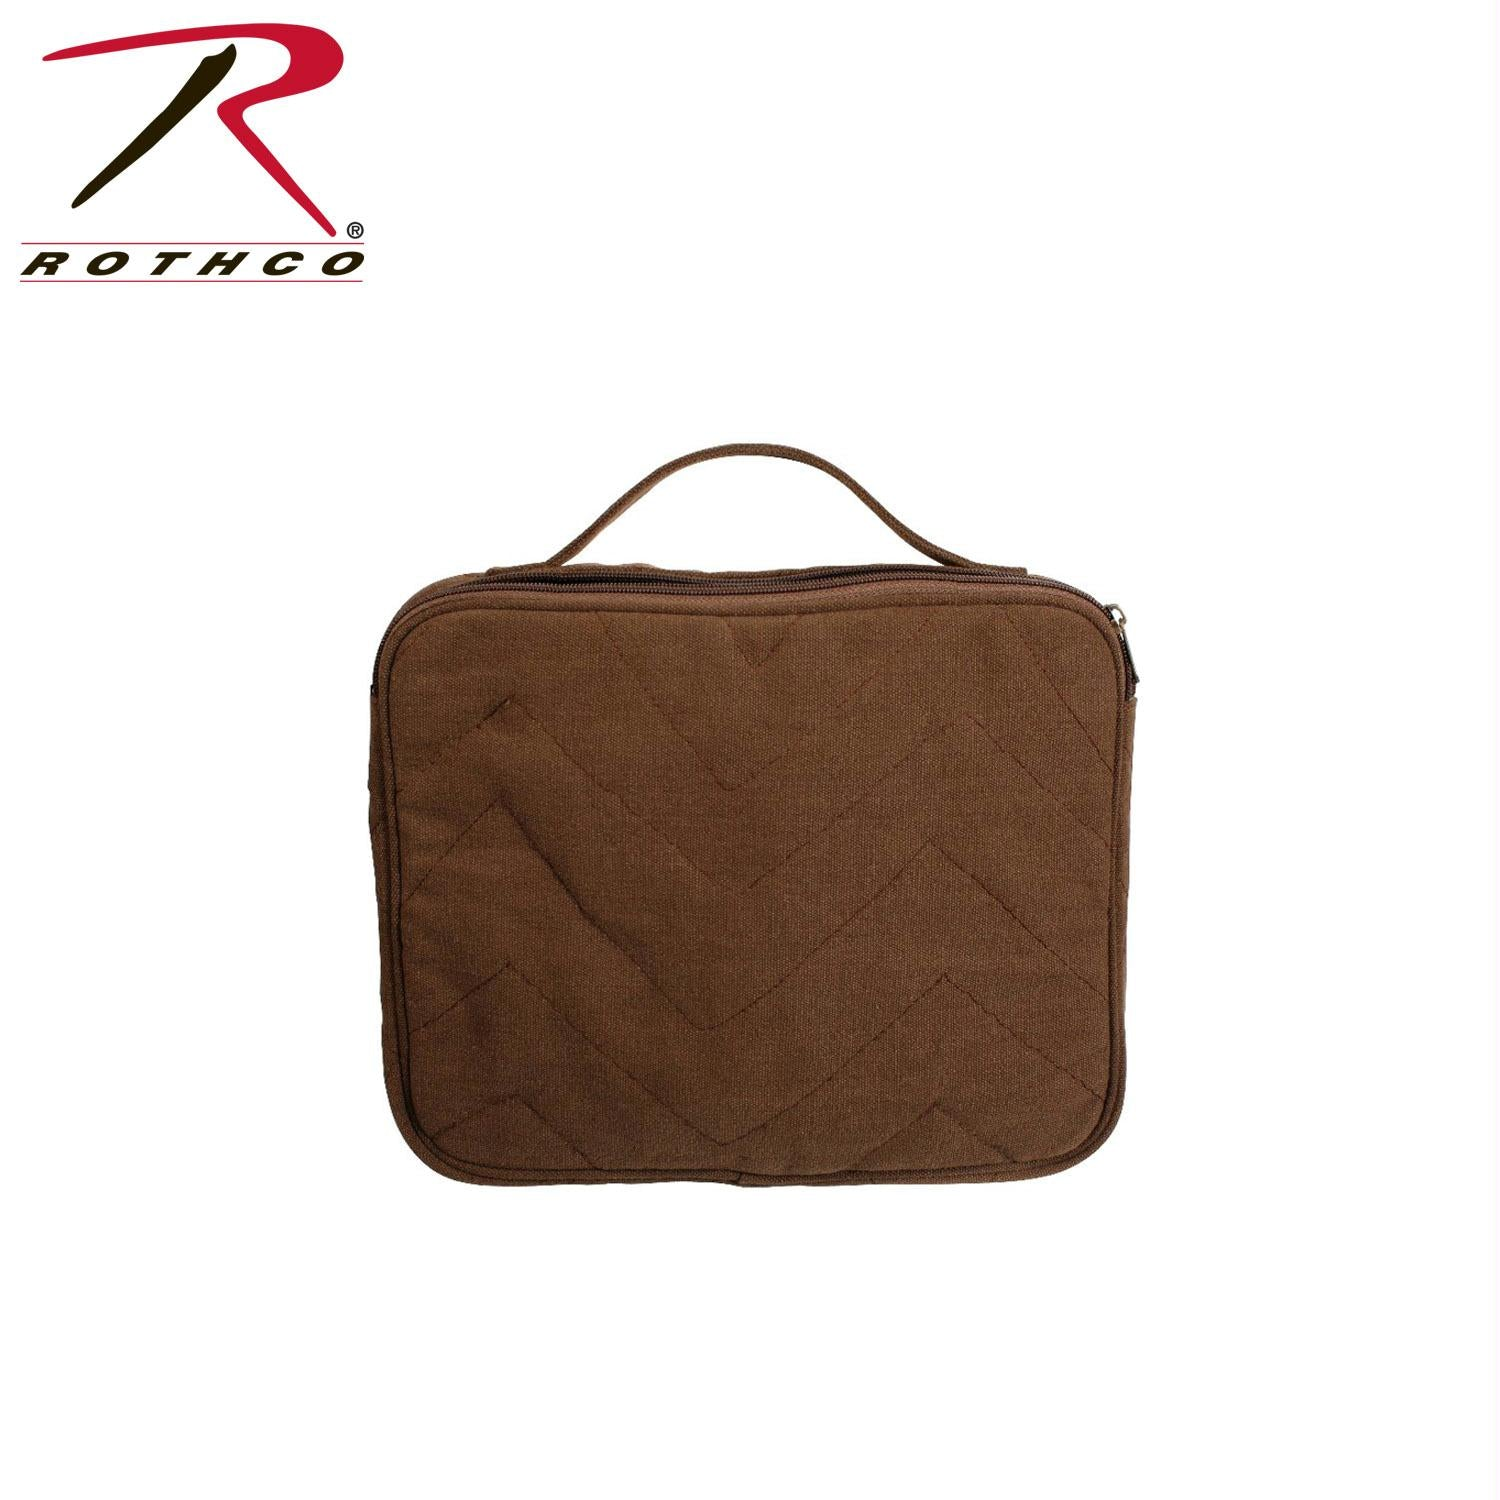 Rothco Vintage Canvas iPad / Netbook Pouch